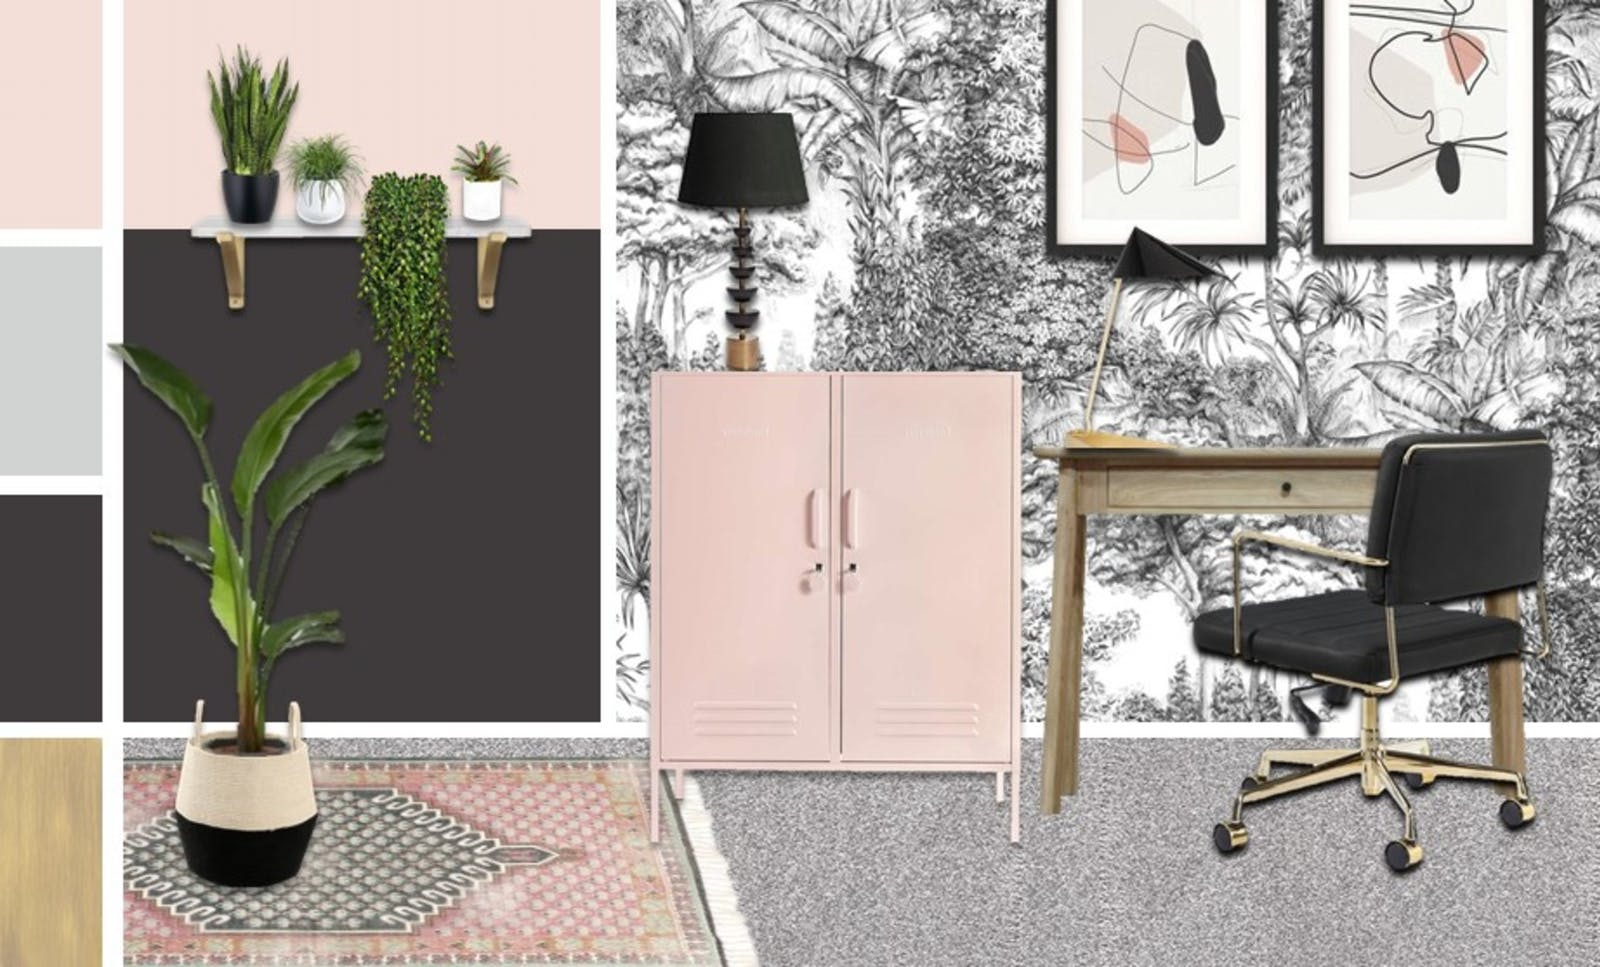 Office render with black and white botanical wallpaper, pink accents and house plants